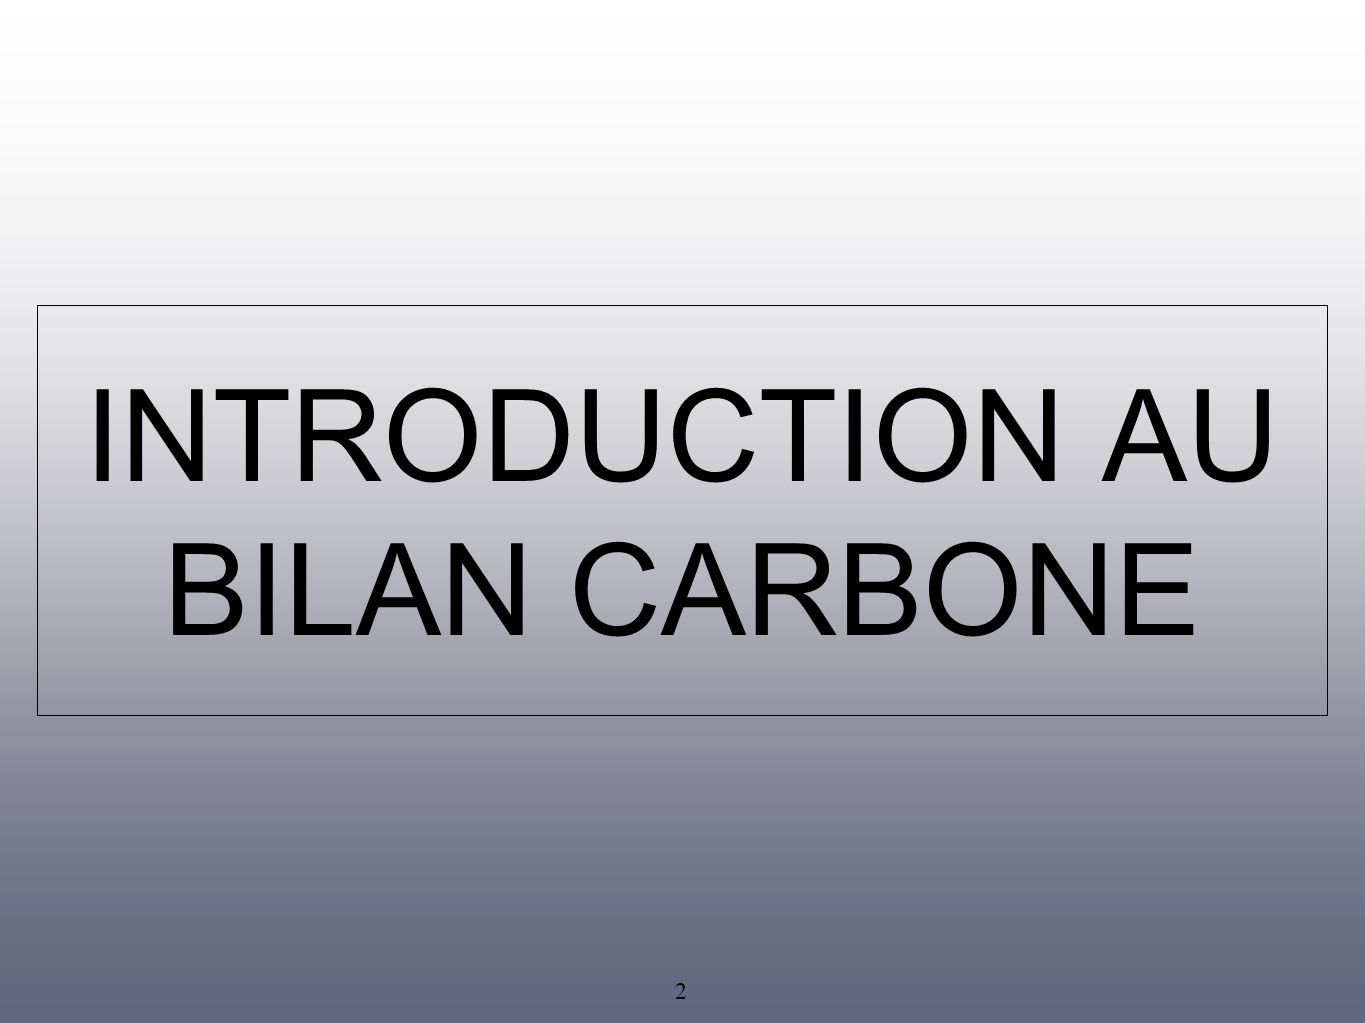 INTRODUCTION AU BILAN CARBONE